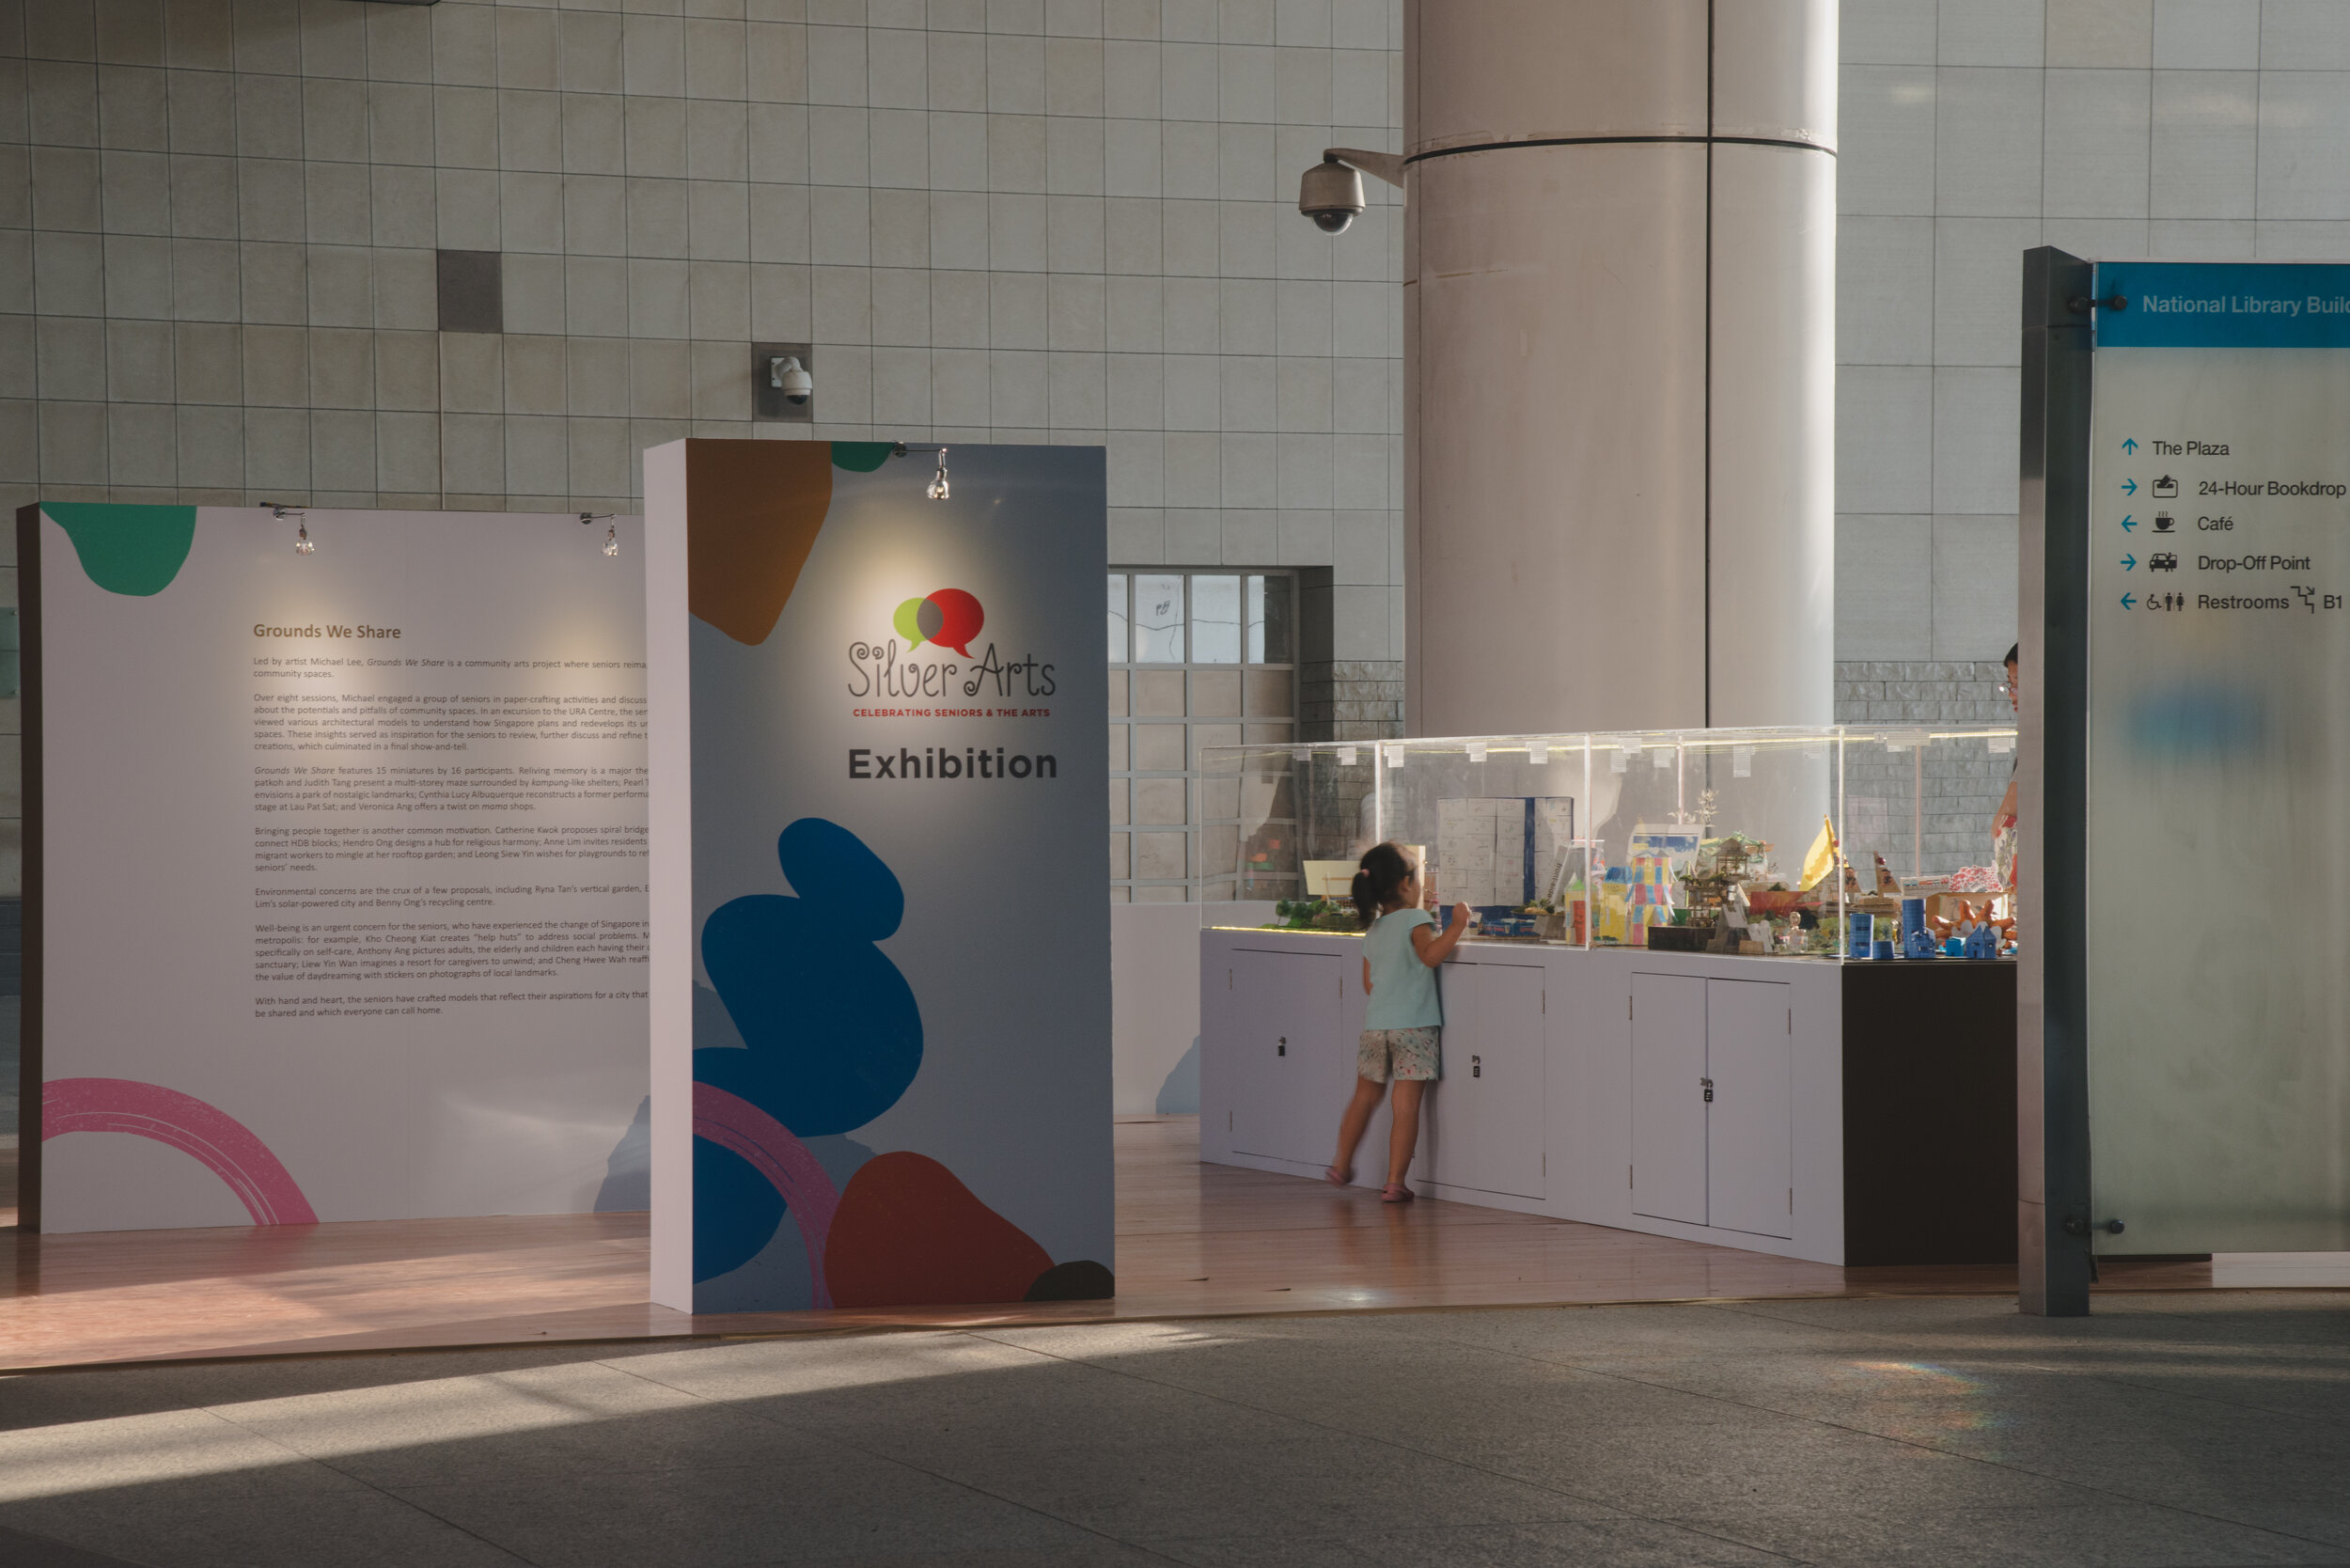 """Installation view (from Middle Road) of """"Grounds We Share"""" at The Plaza, National Library Building, Singapore, a community arts project of Silver Arts 2019, led by artist Michael Lee with 16 participants. Photo by Ng Hui Hsien."""